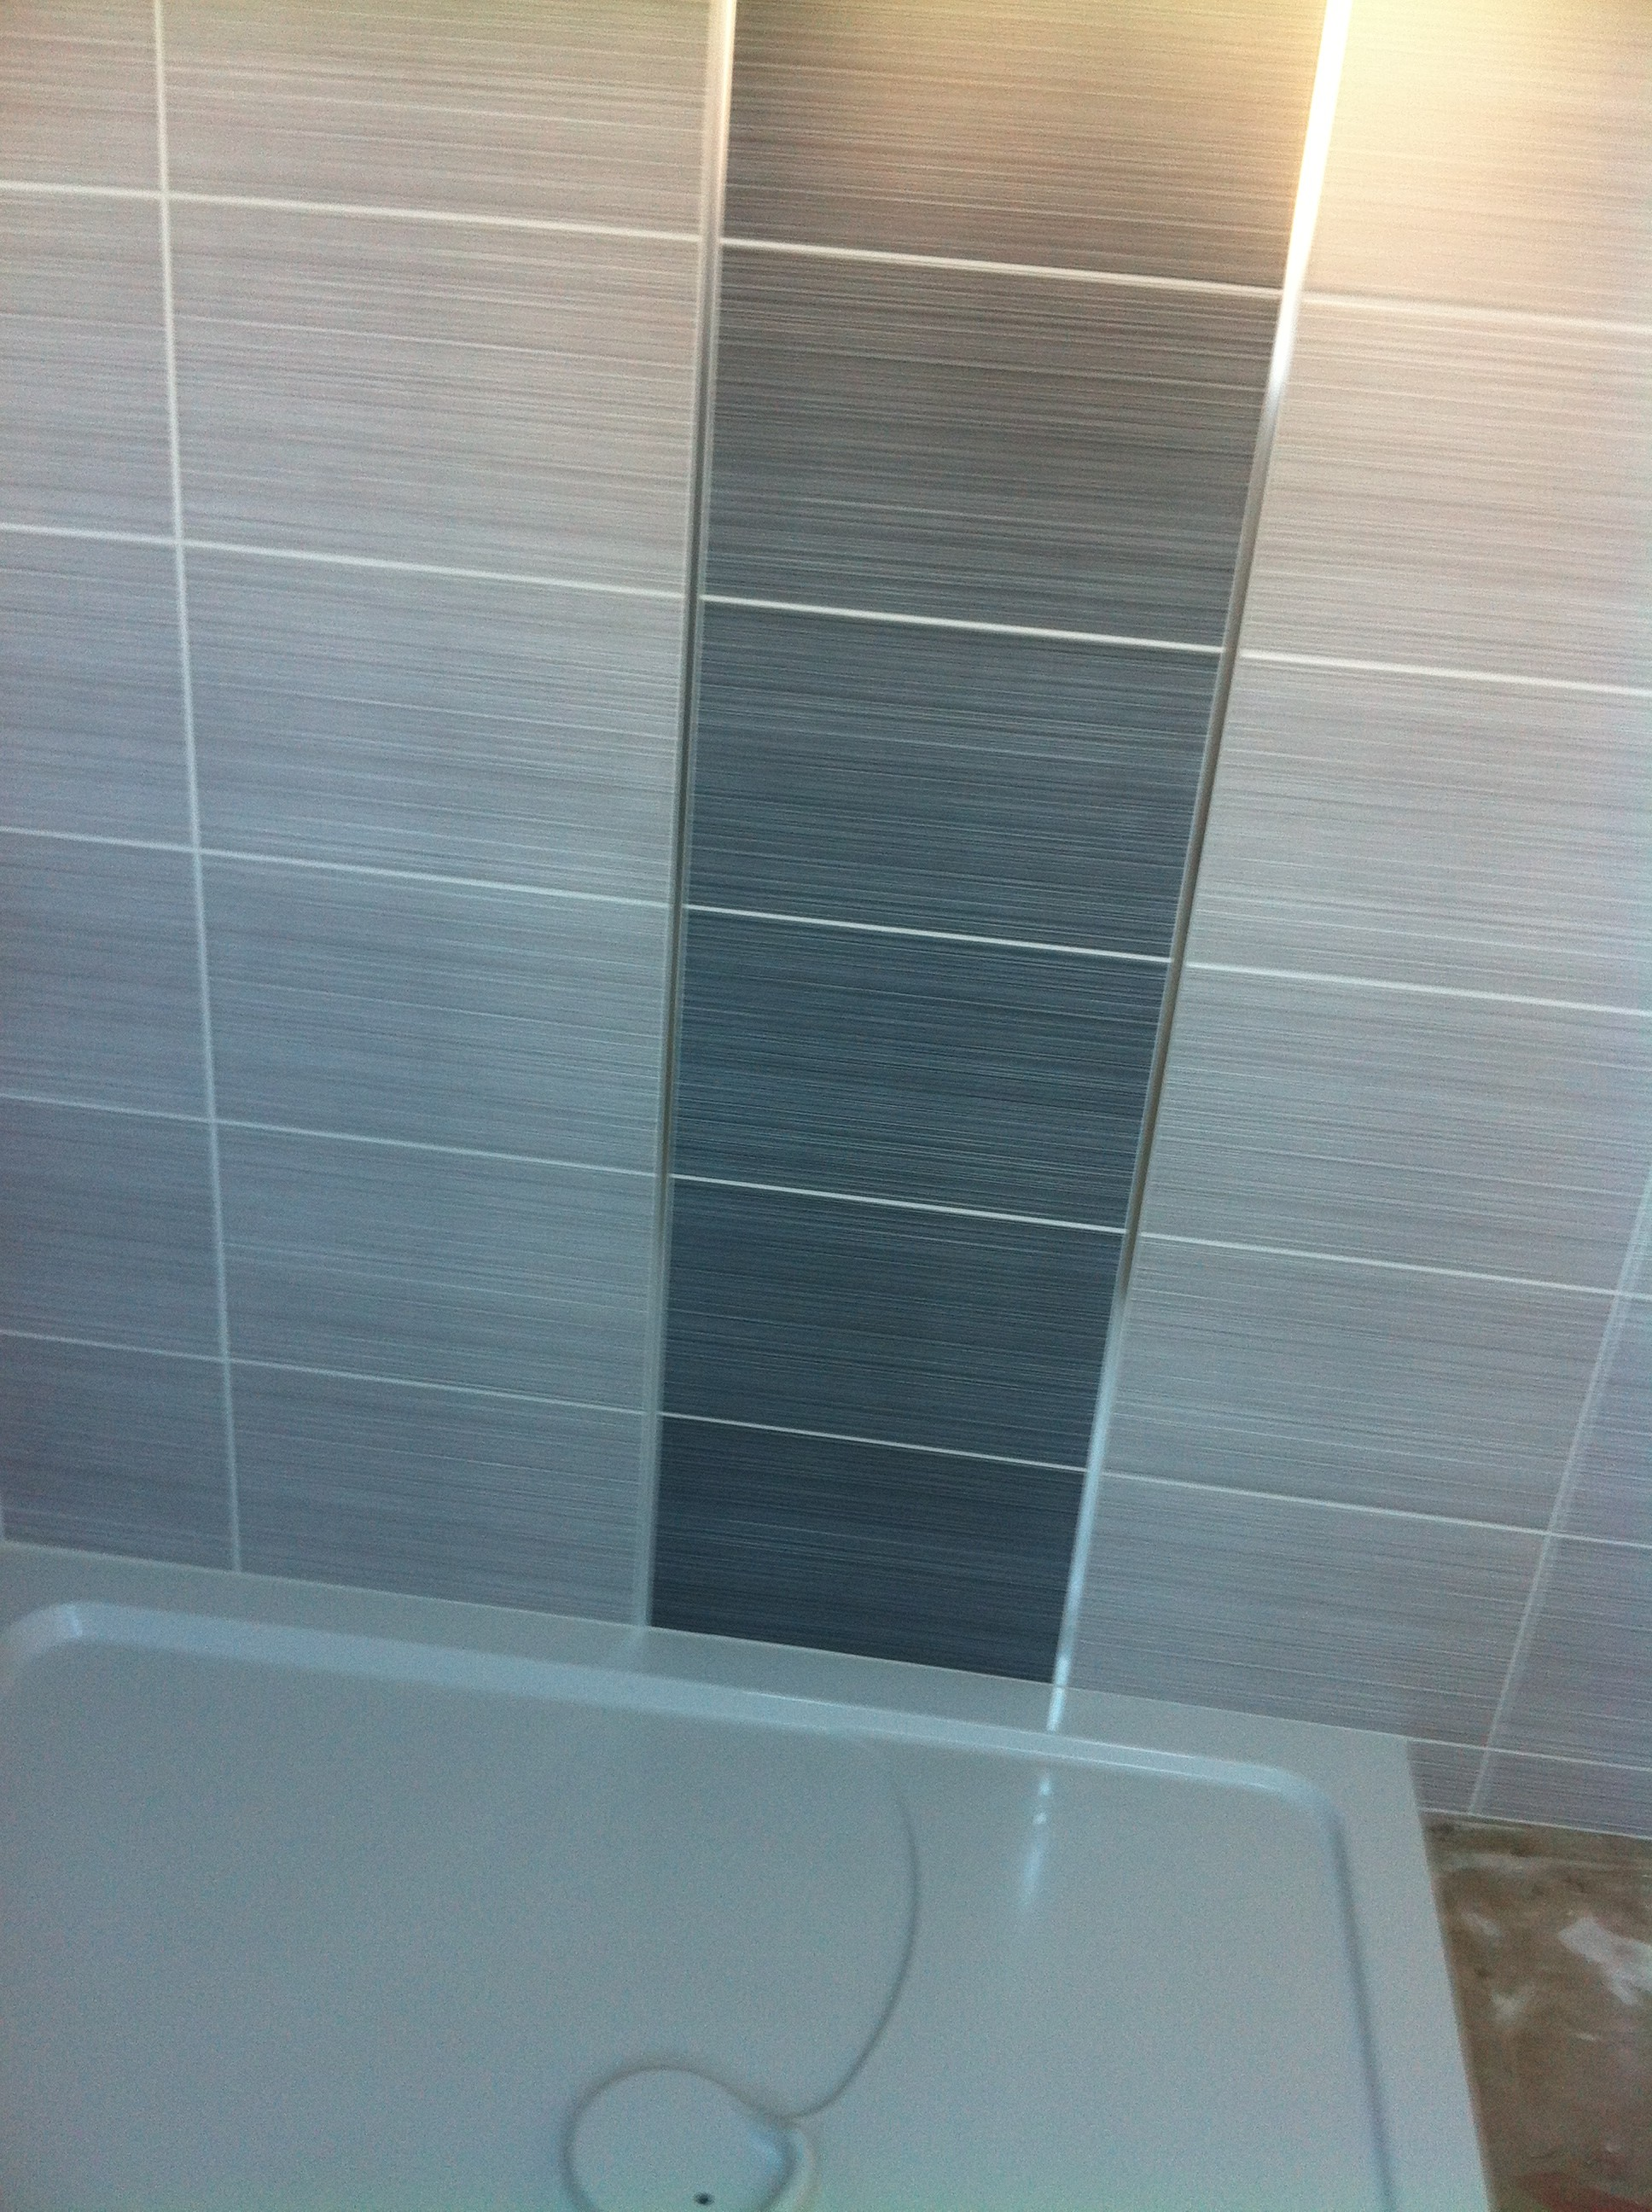 Bathrooms – Griffin Tiling